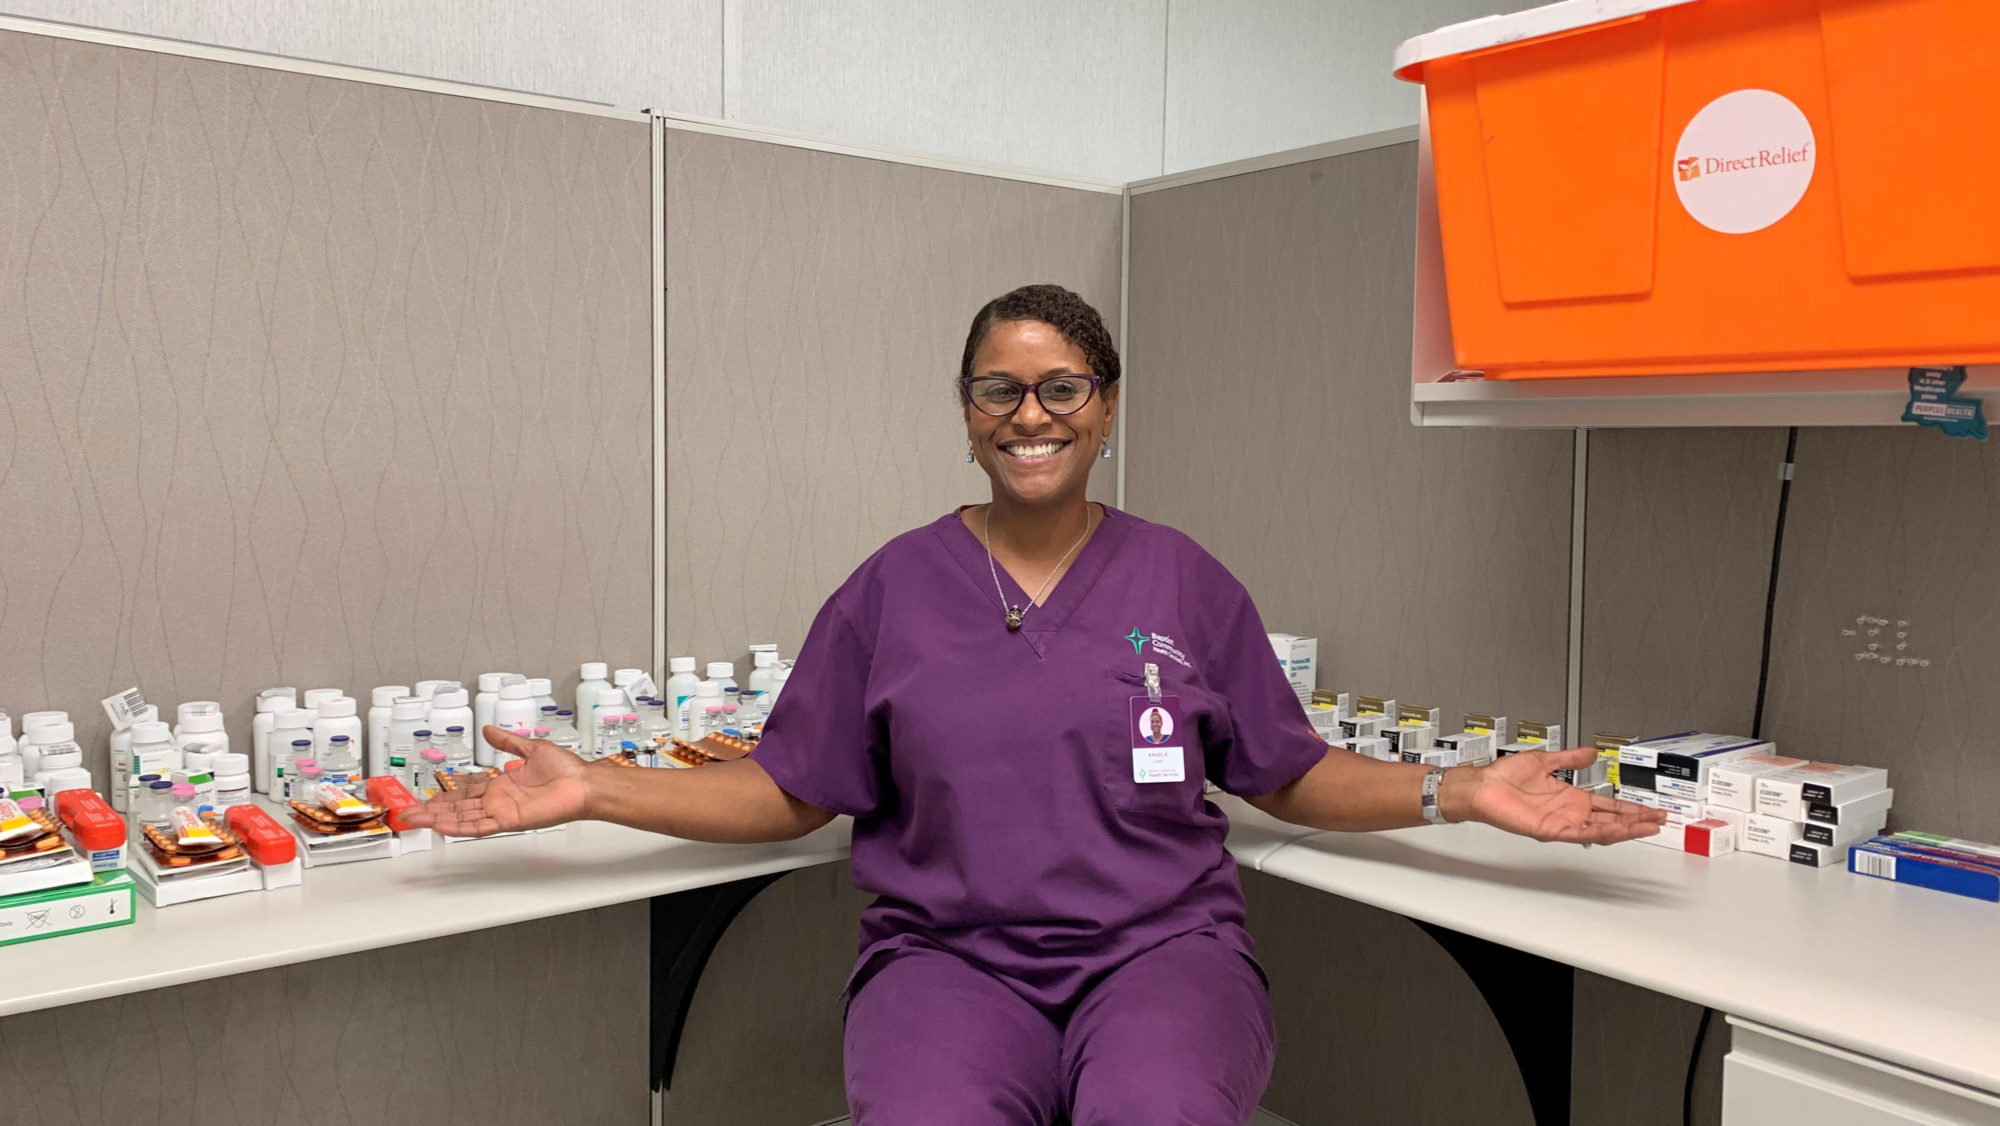 A staff member at Baptist Community Health Services shows off the sorted contents of a Direct Relief Hurricane Prep Pack. (Photo courtesy of Baptist Community Health Services)